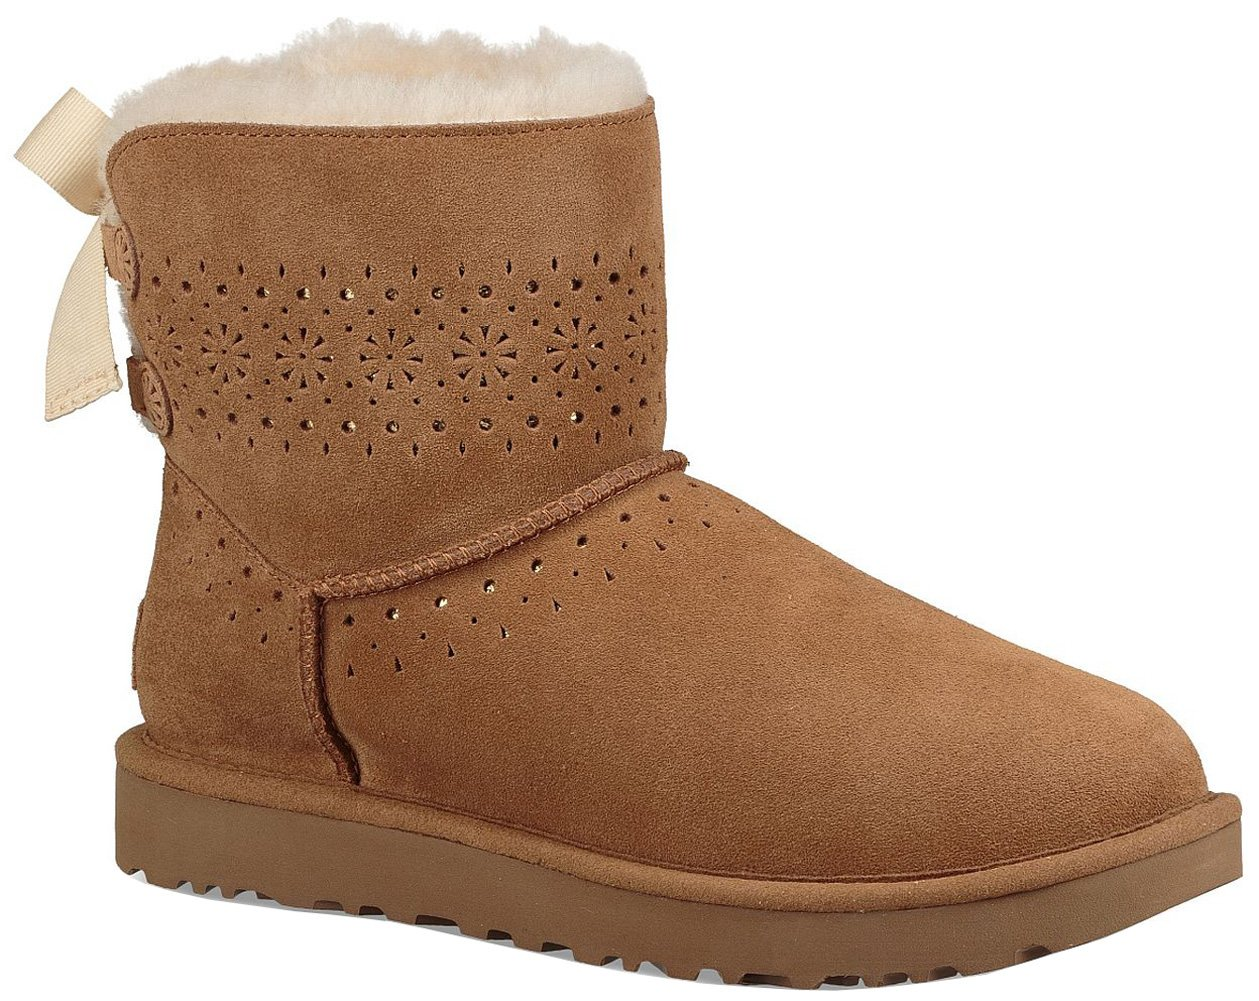 UGG Womens Dae Sunshine Perf Boot, Chestnut, Size 9